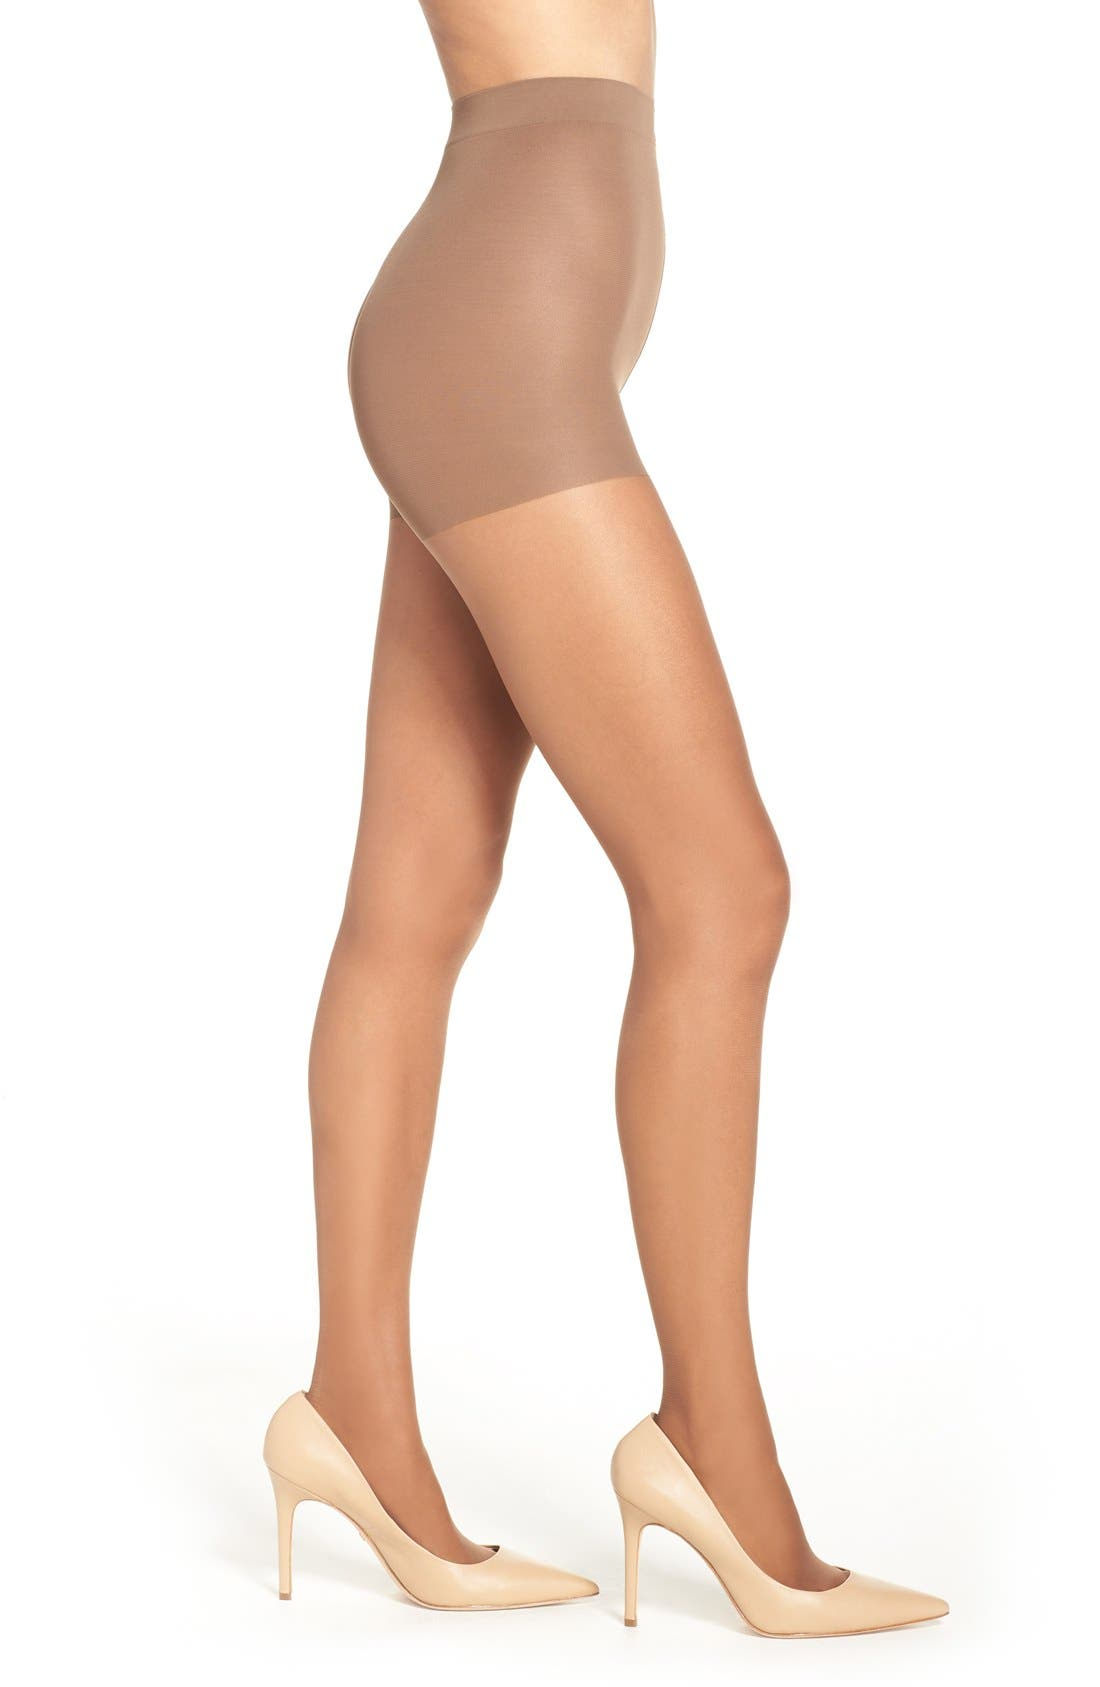 Nordstrom Control Top Pantyhose (3 for $36)